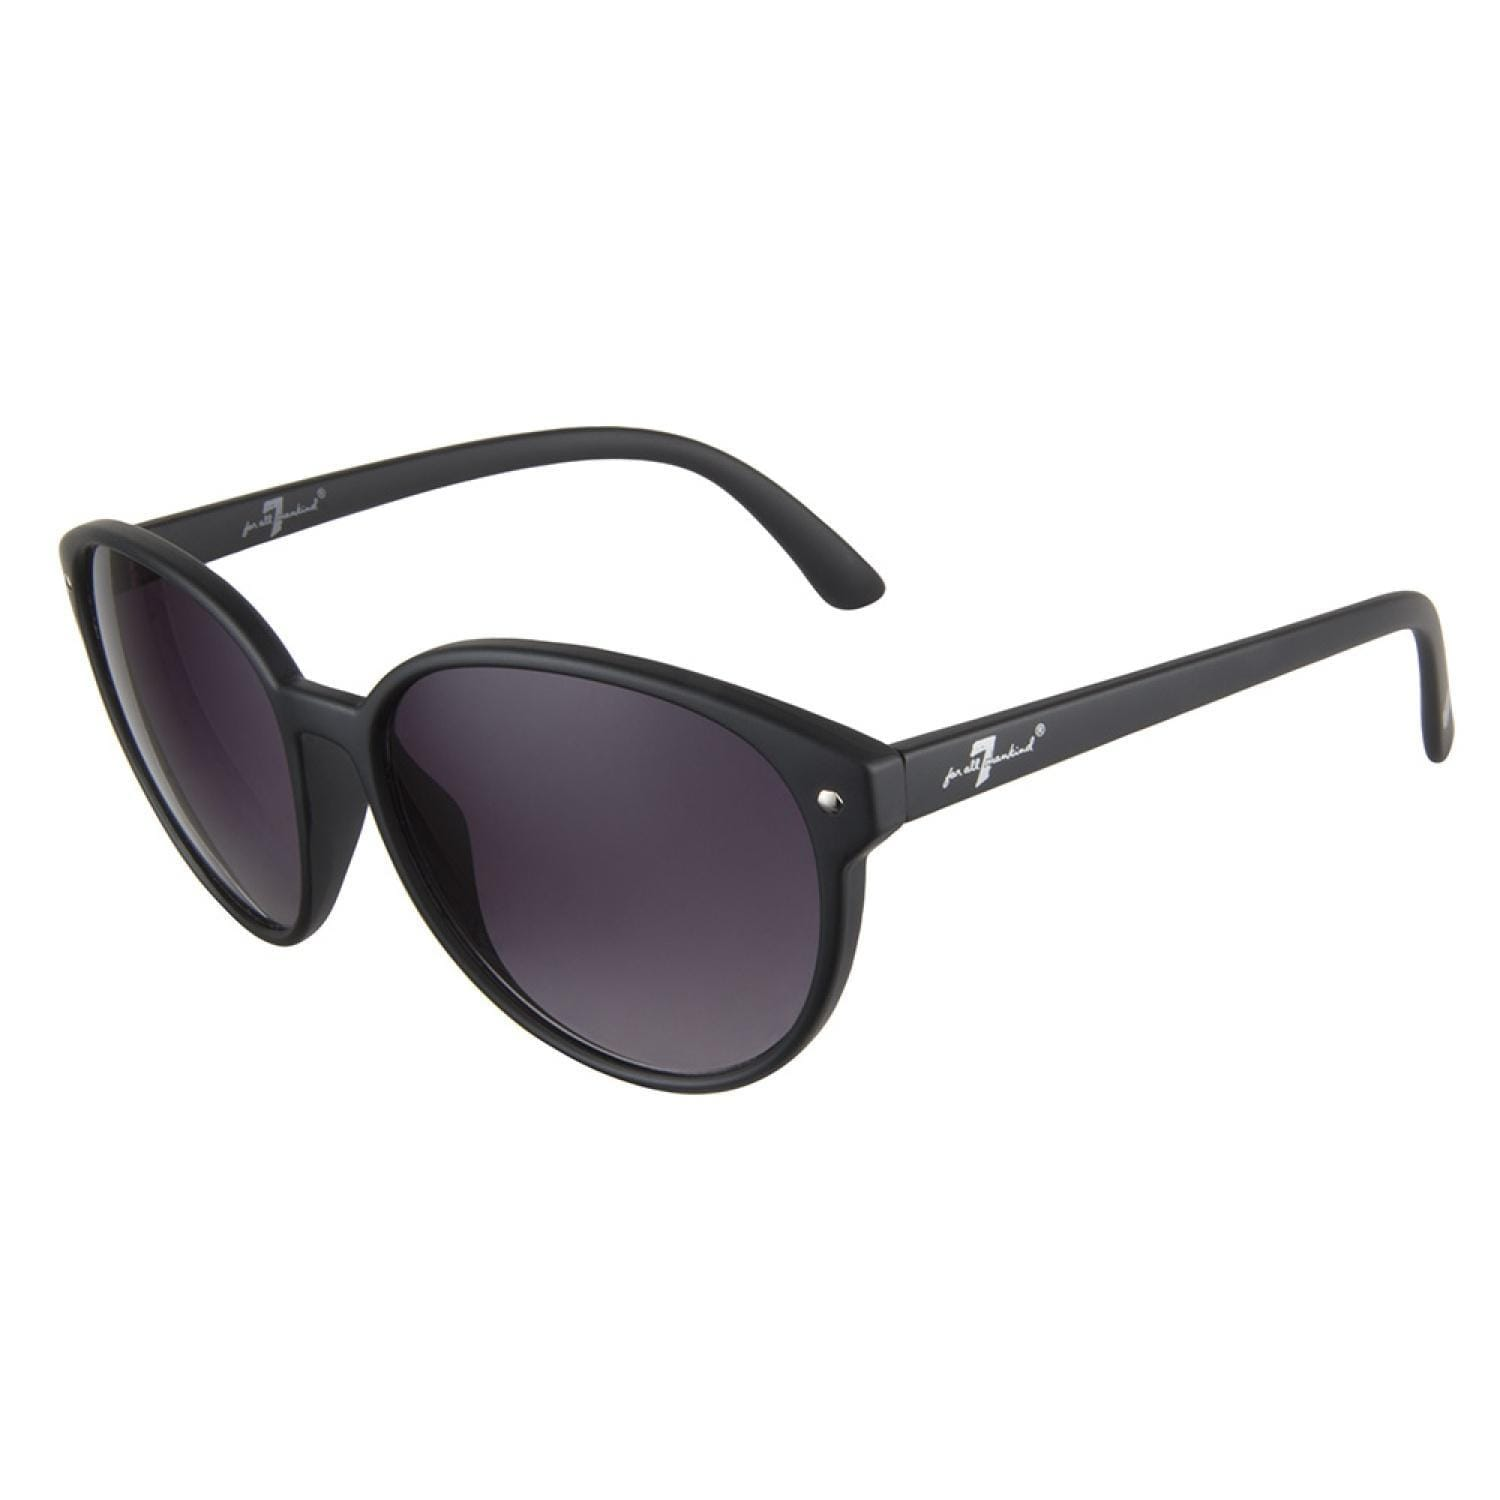 Seven For All Mankind Sunglasses  7 for all mankind sycamore jet sunglasses free shipping today